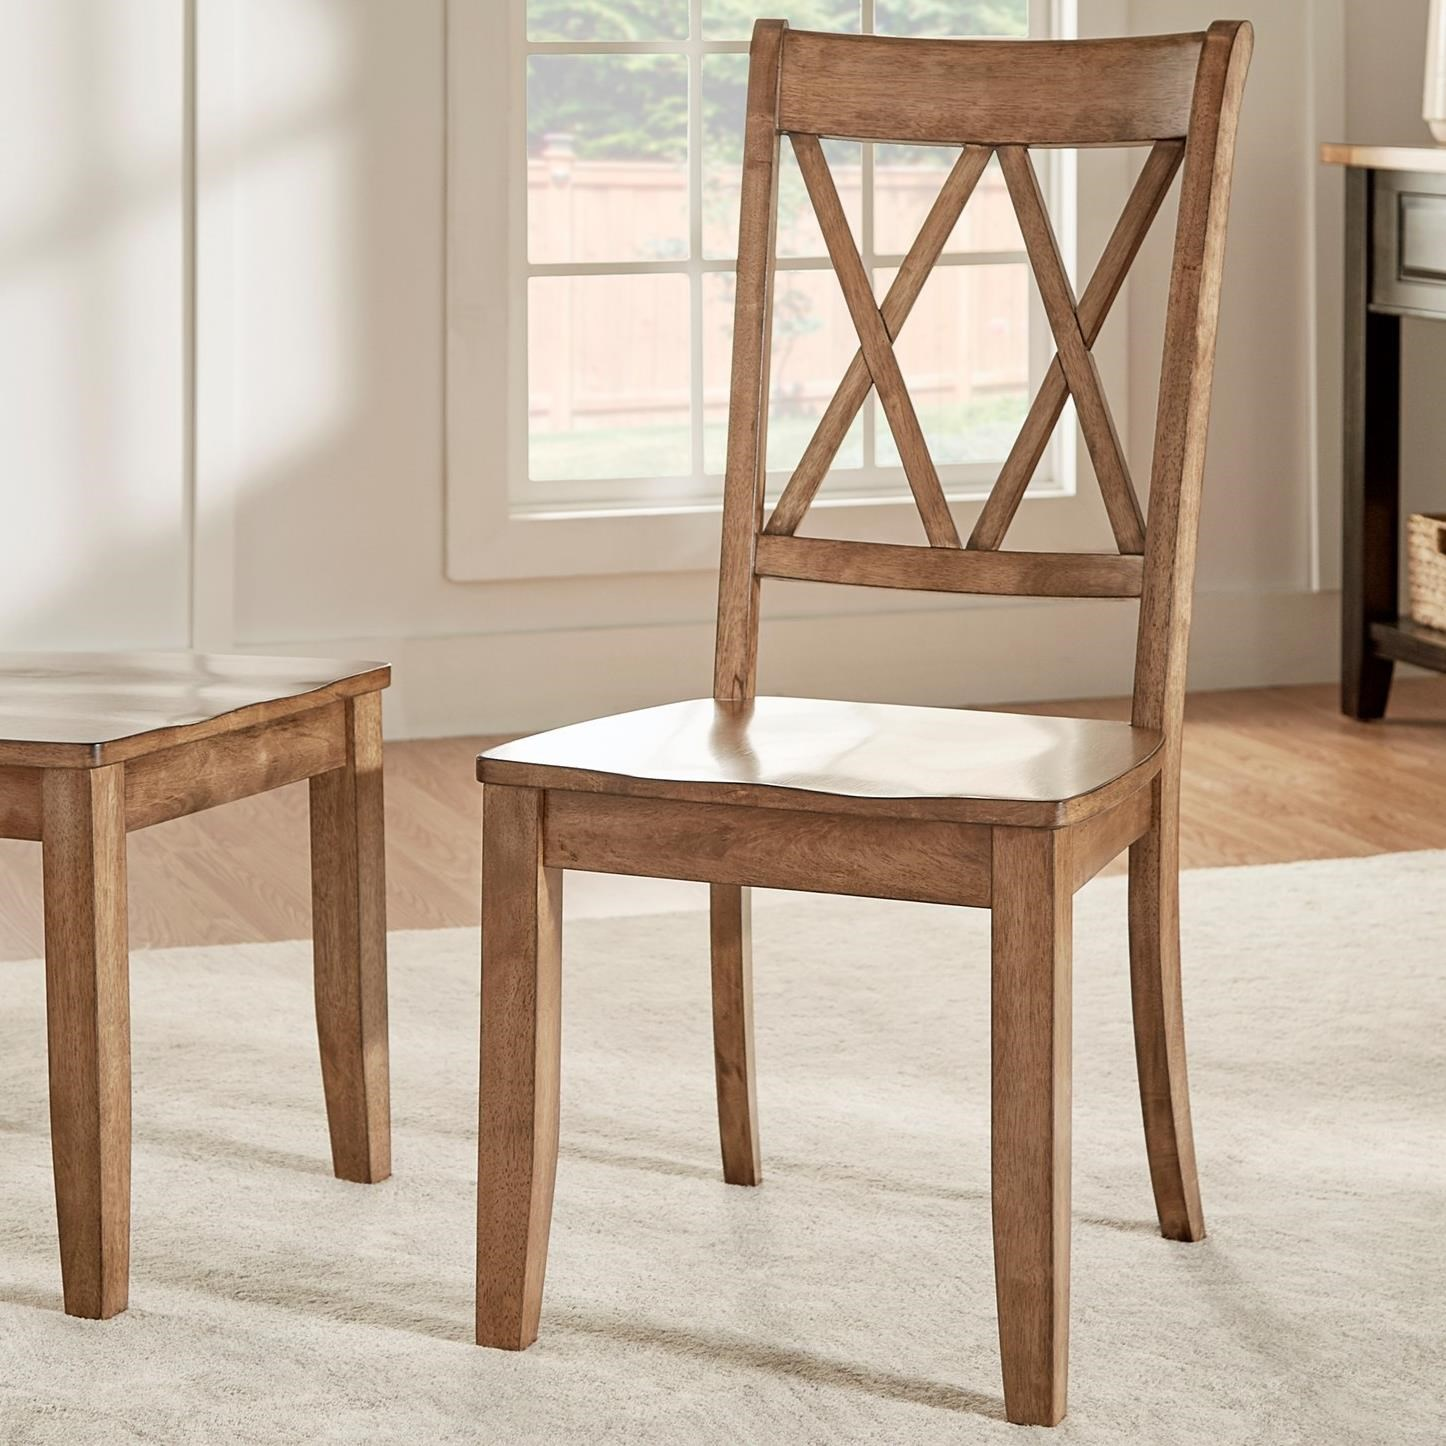 Homelegance 530 Dining Side Chair - Item Number: 530C3-AK